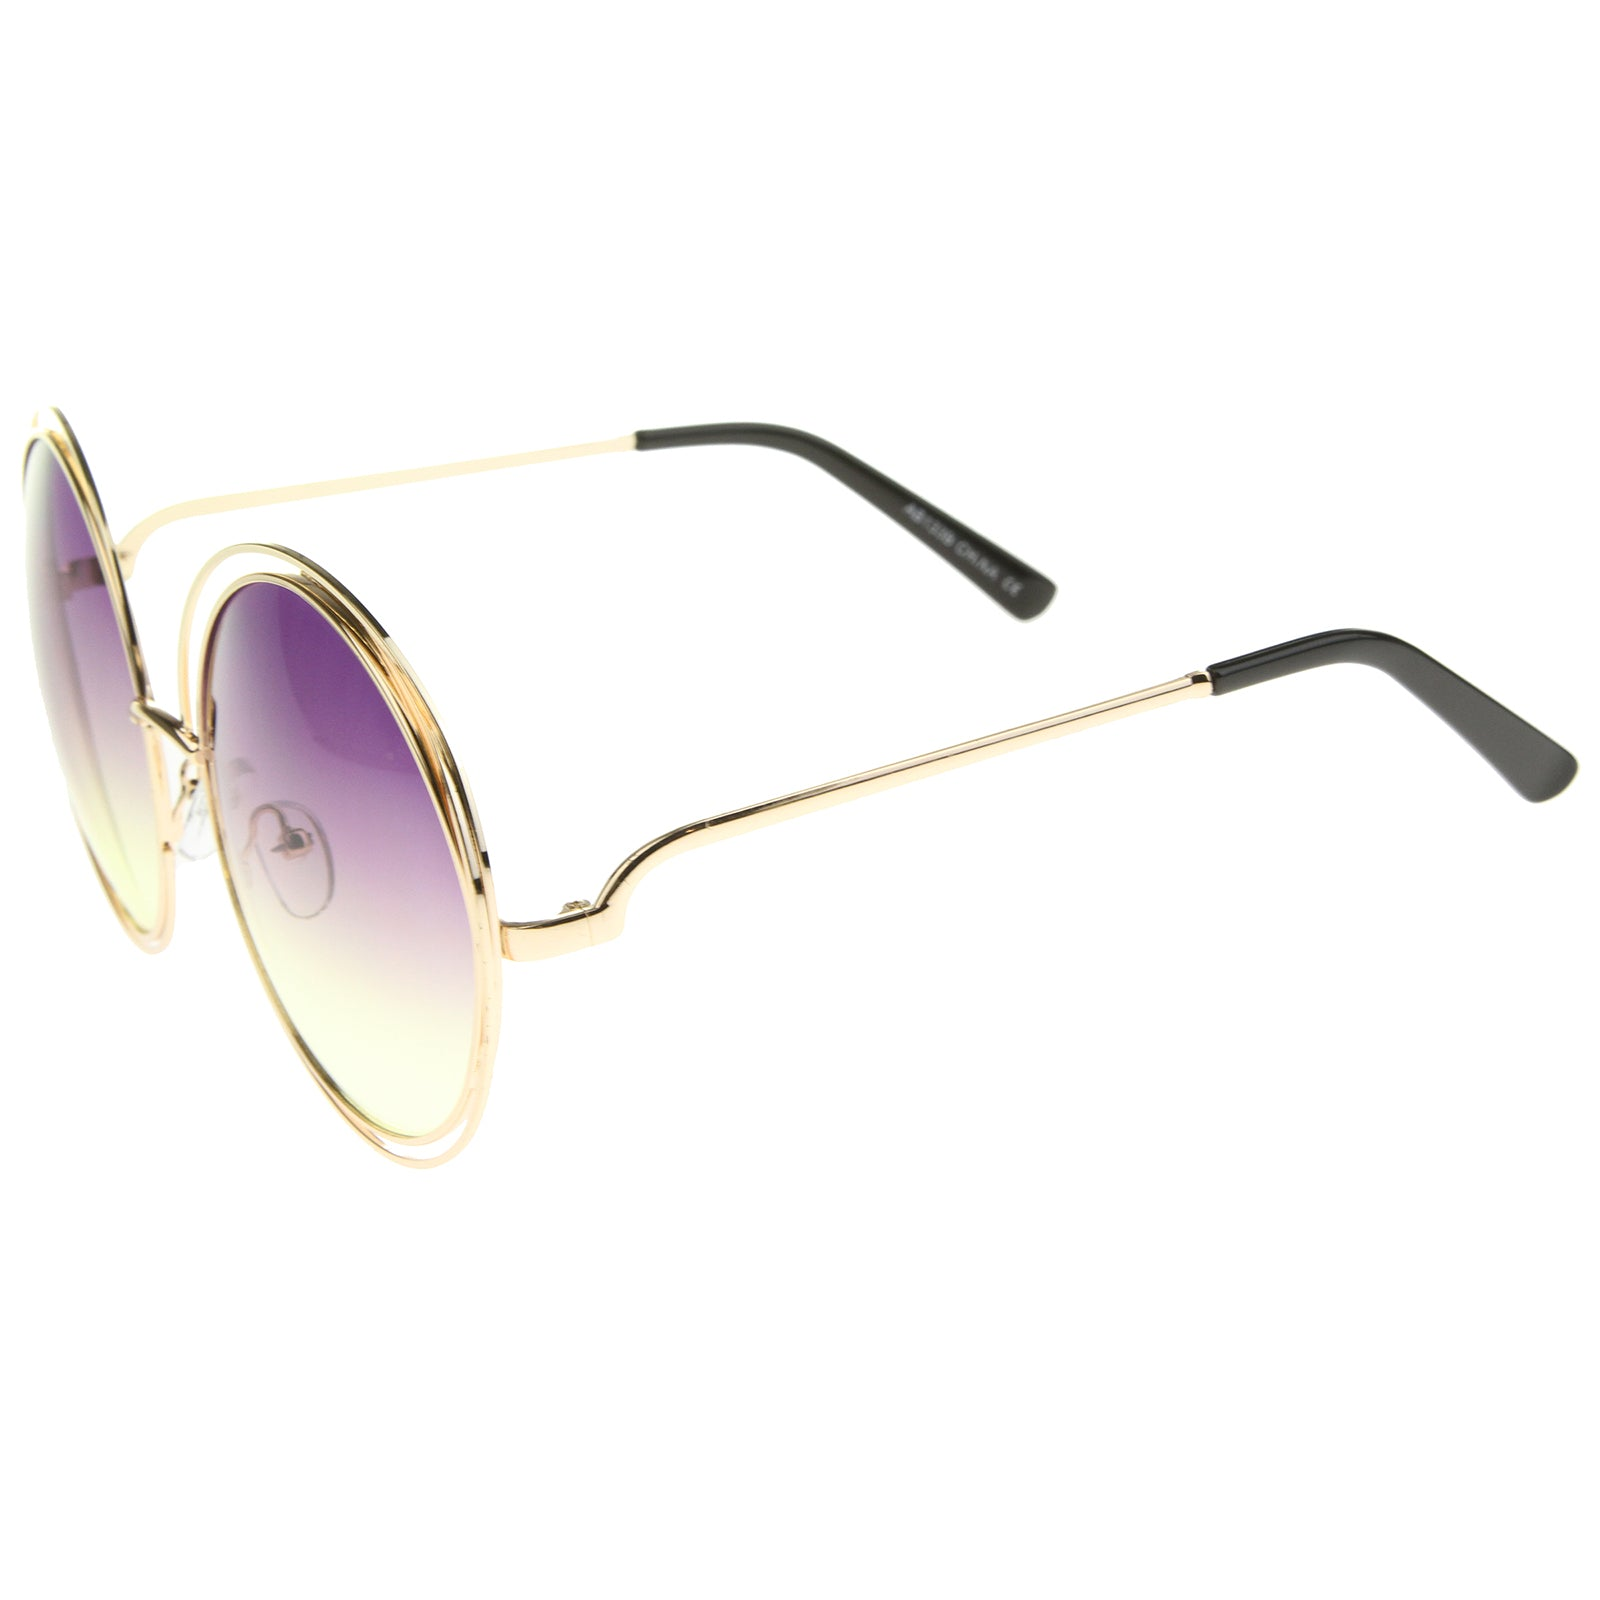 Oversize Wire Frame Gradient Two-Tone Color Lens Round Sunglasses 61mm - sunglass.la - 11